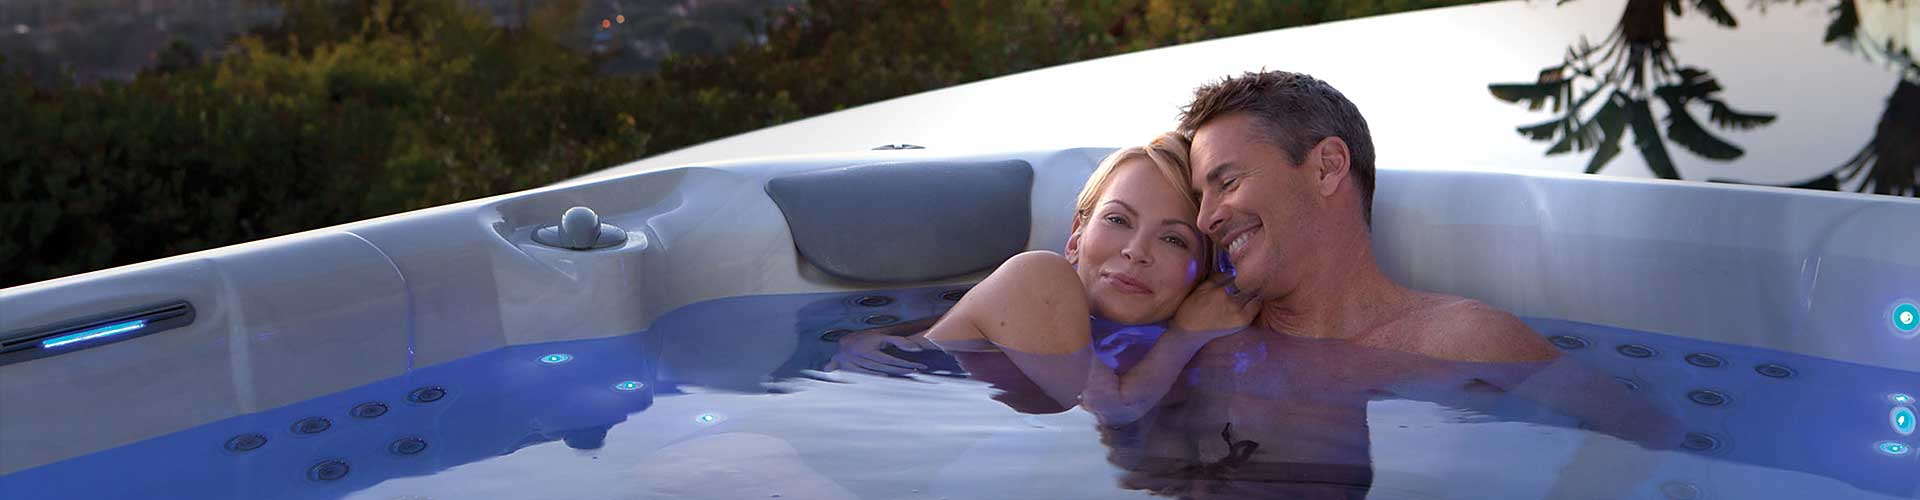 Tips for Your Next Hot Tub Date Night